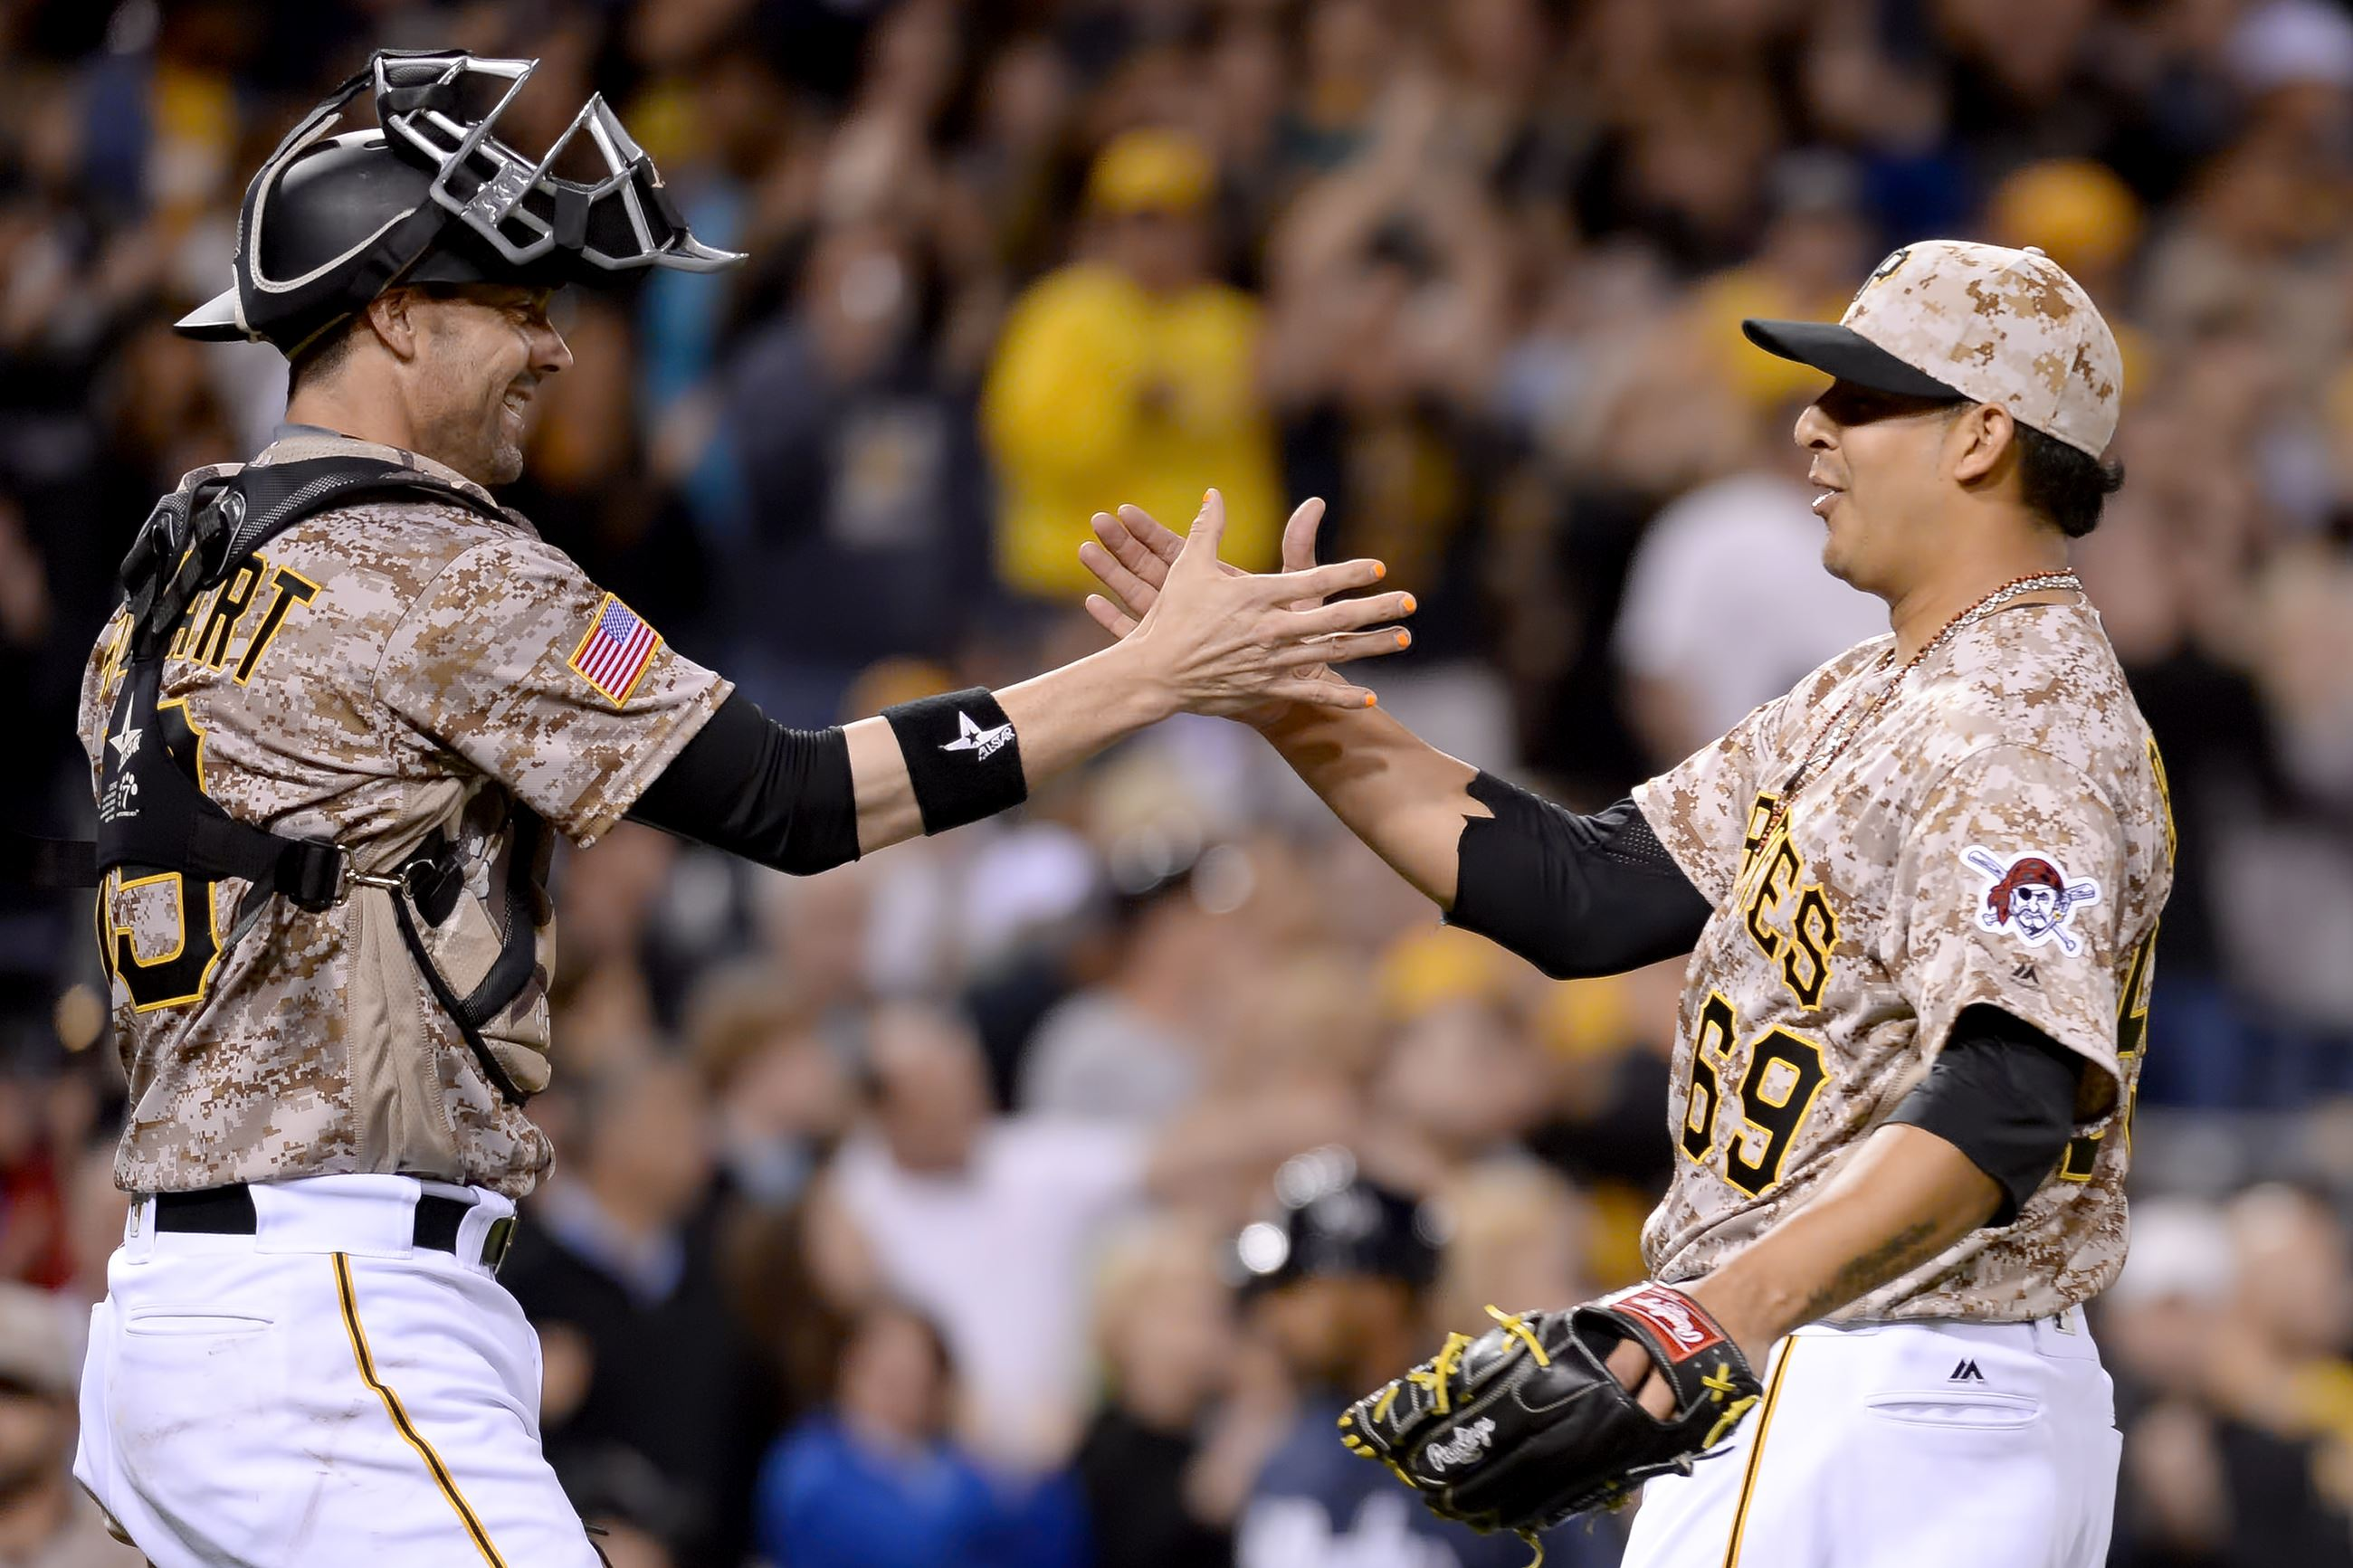 Vogelsong leaves after being hit in head